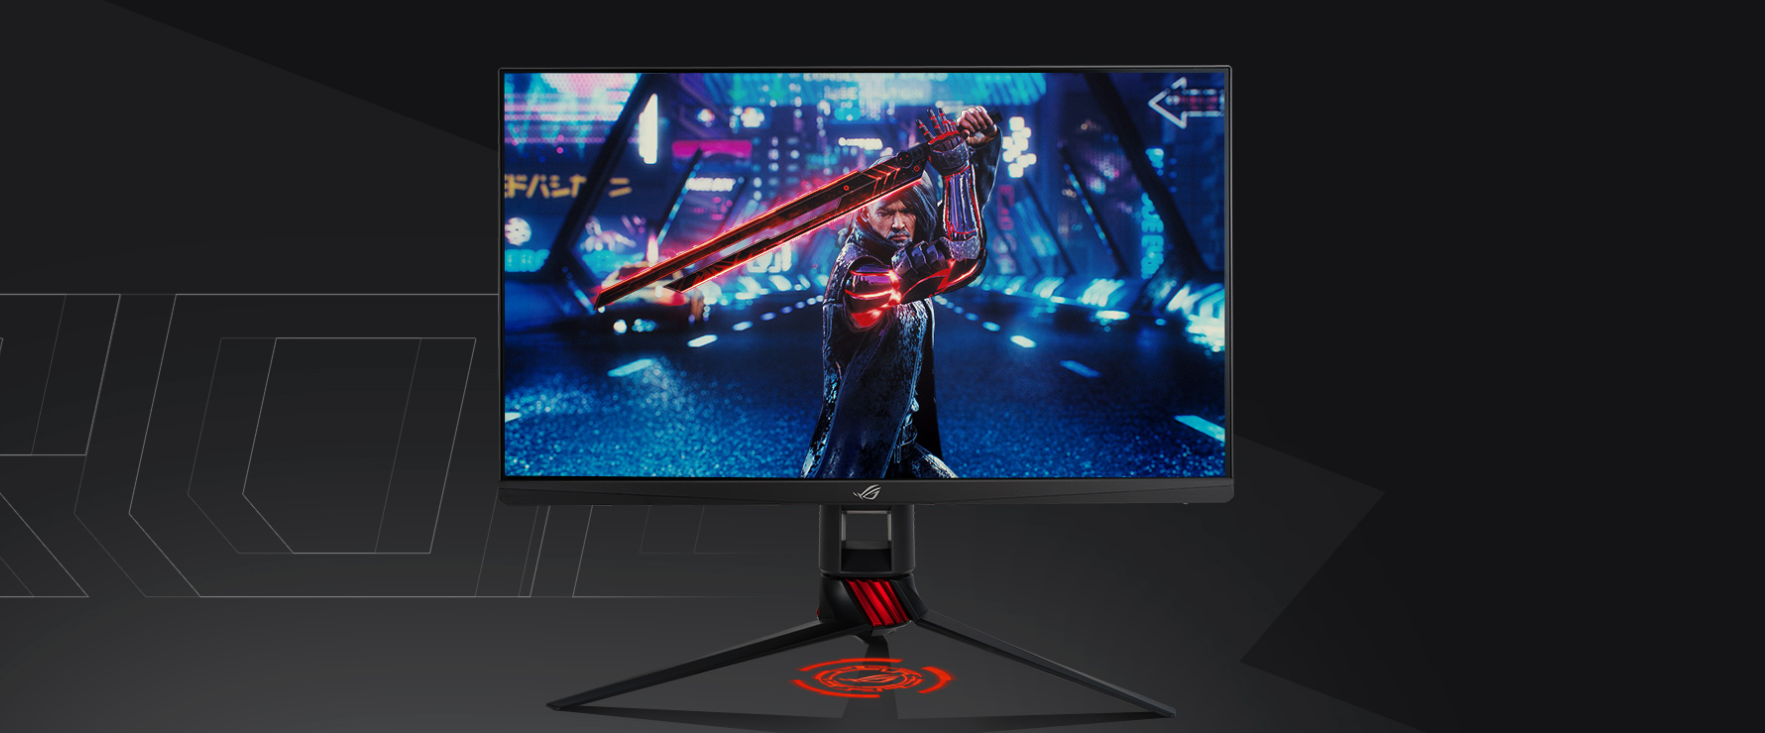 ASUS ROG Strix XG279Q 170Hz 1440p G-Sync Compatible Gaming Monitor Available for Purchase on May 17th from Amazon